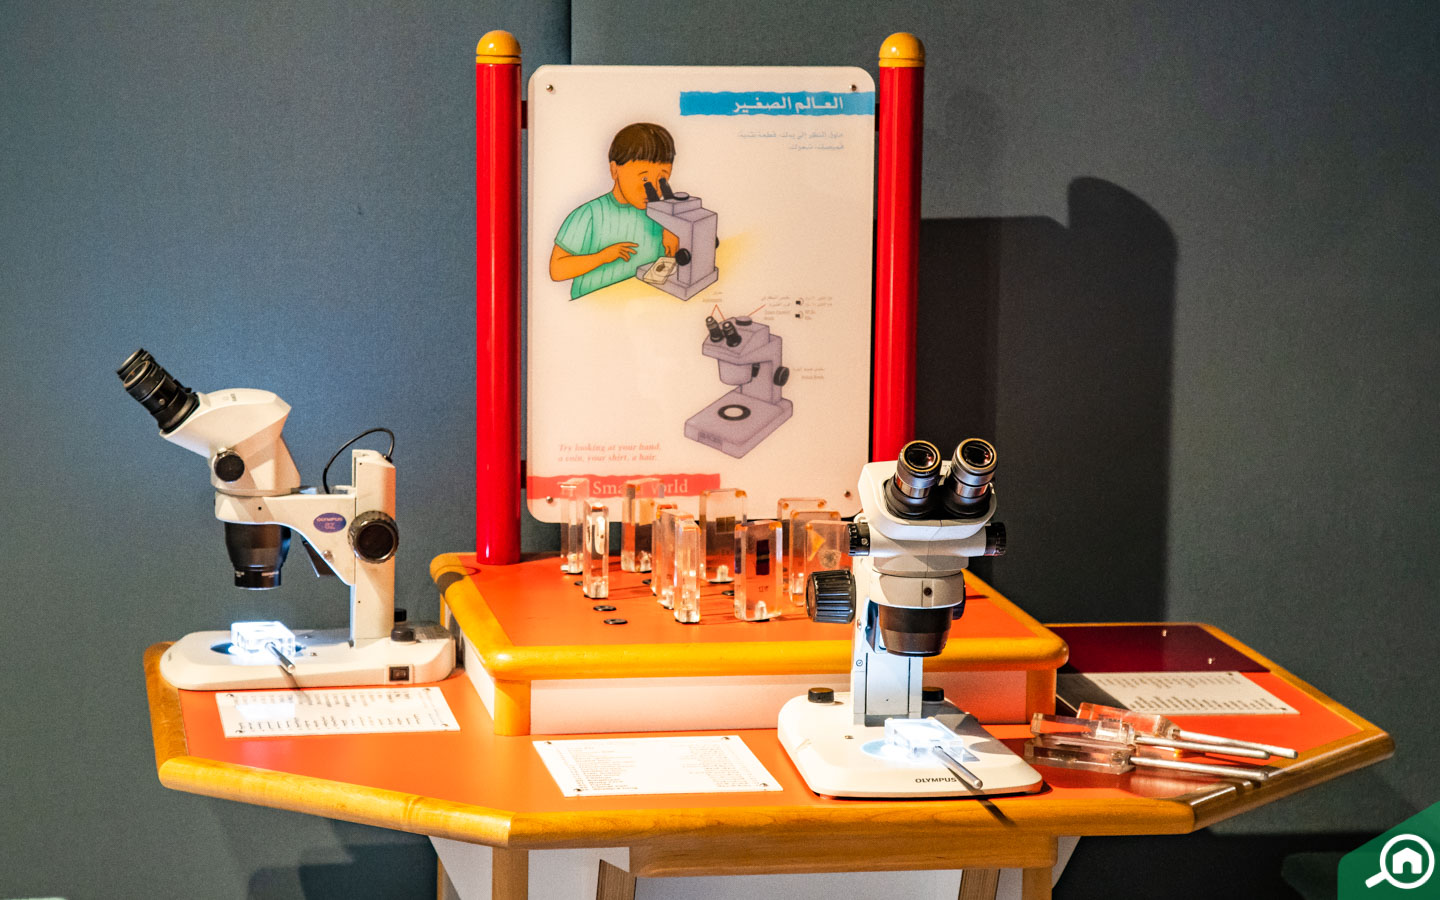 Fully functional microscopes at the Sharjah Science Museum